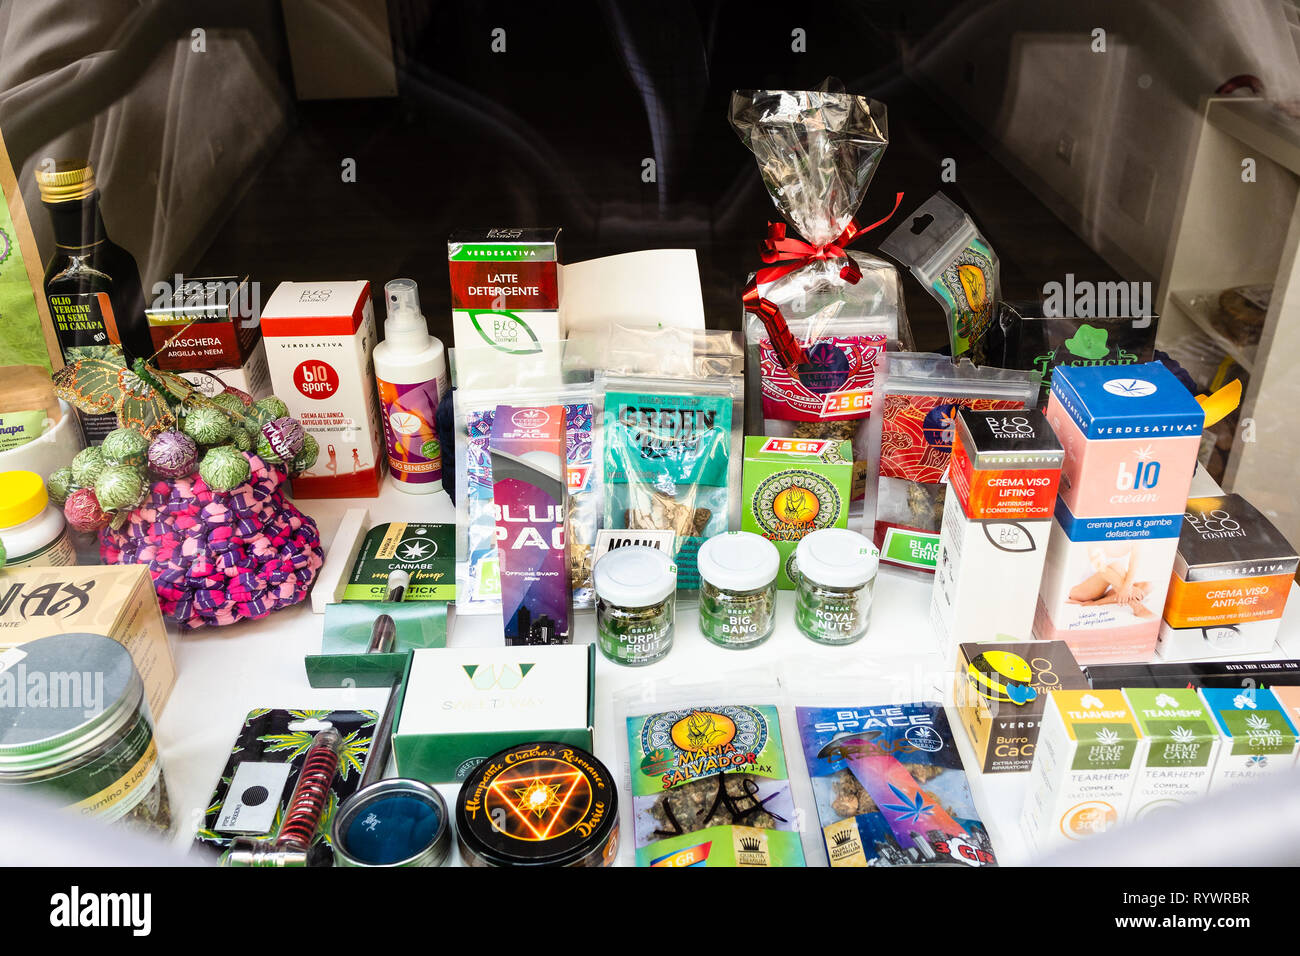 BERGAMO, ITALY - FEBRUARY 26, 2019: window of bio store with various legal medicinal herbs and cannabis products in Lower Town of Bergamo city, Lombar - Stock Image